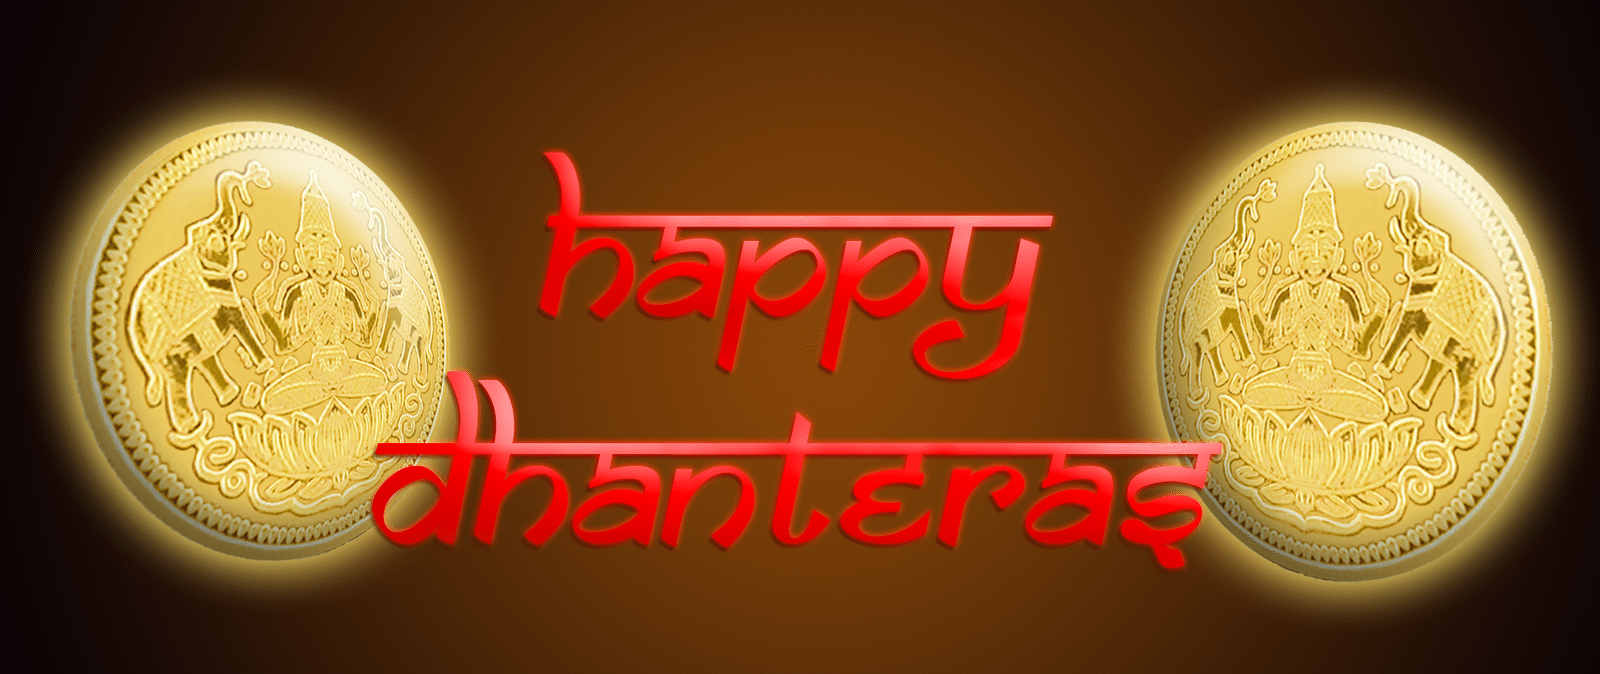 Dhanteras Messages